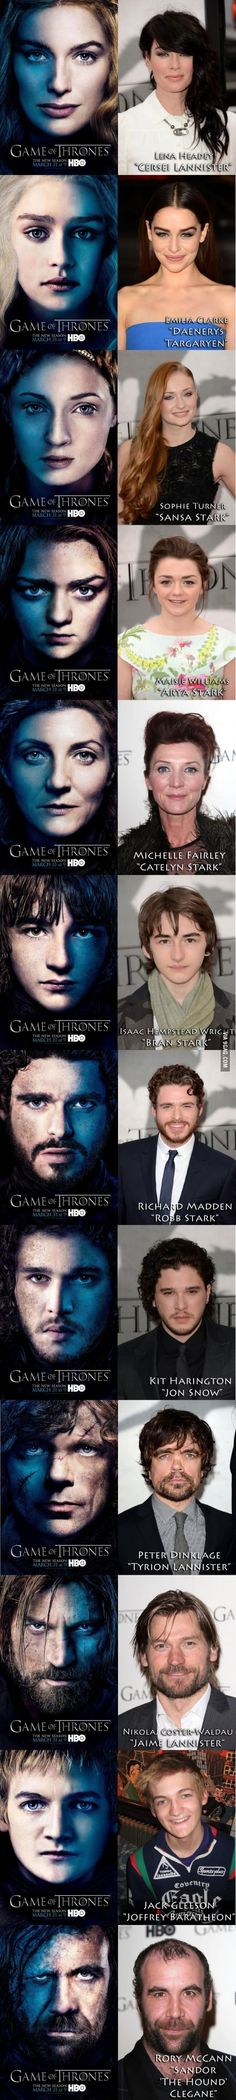 When you play a game of thrones you win or you die - 9GAG